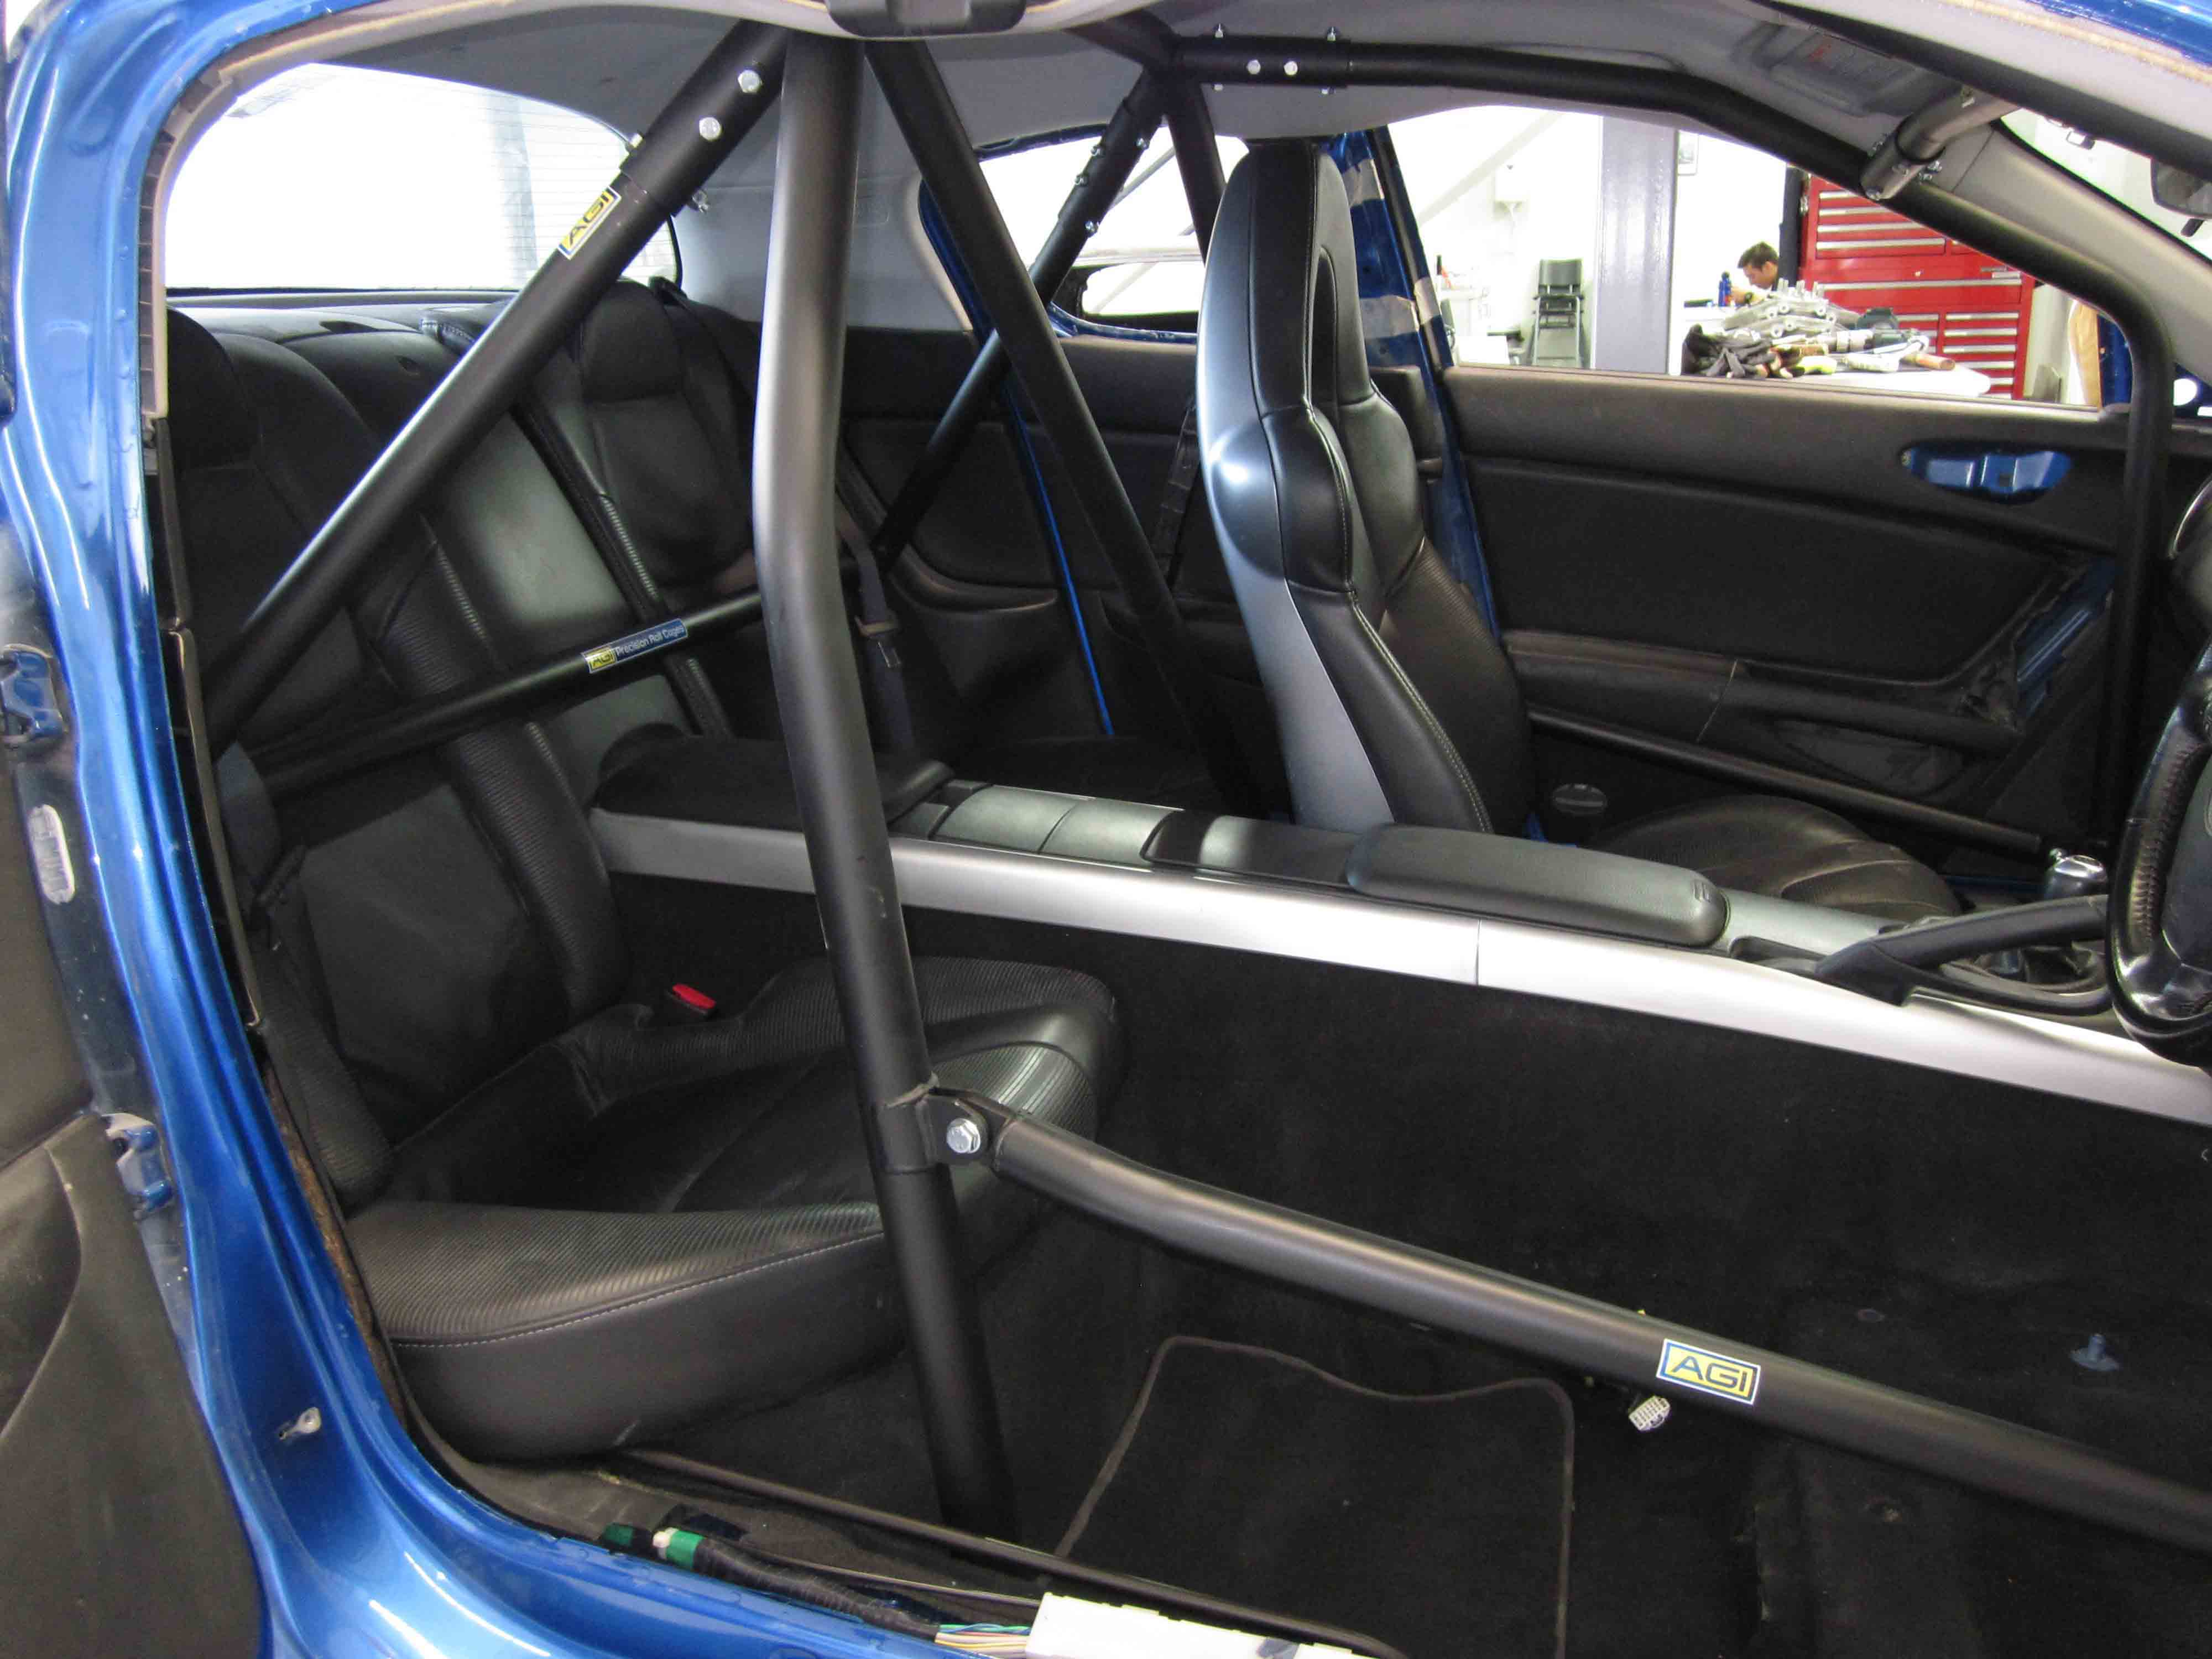 Agi Mazda Rx Cams Spec Bolt In Roll Cage Option C D